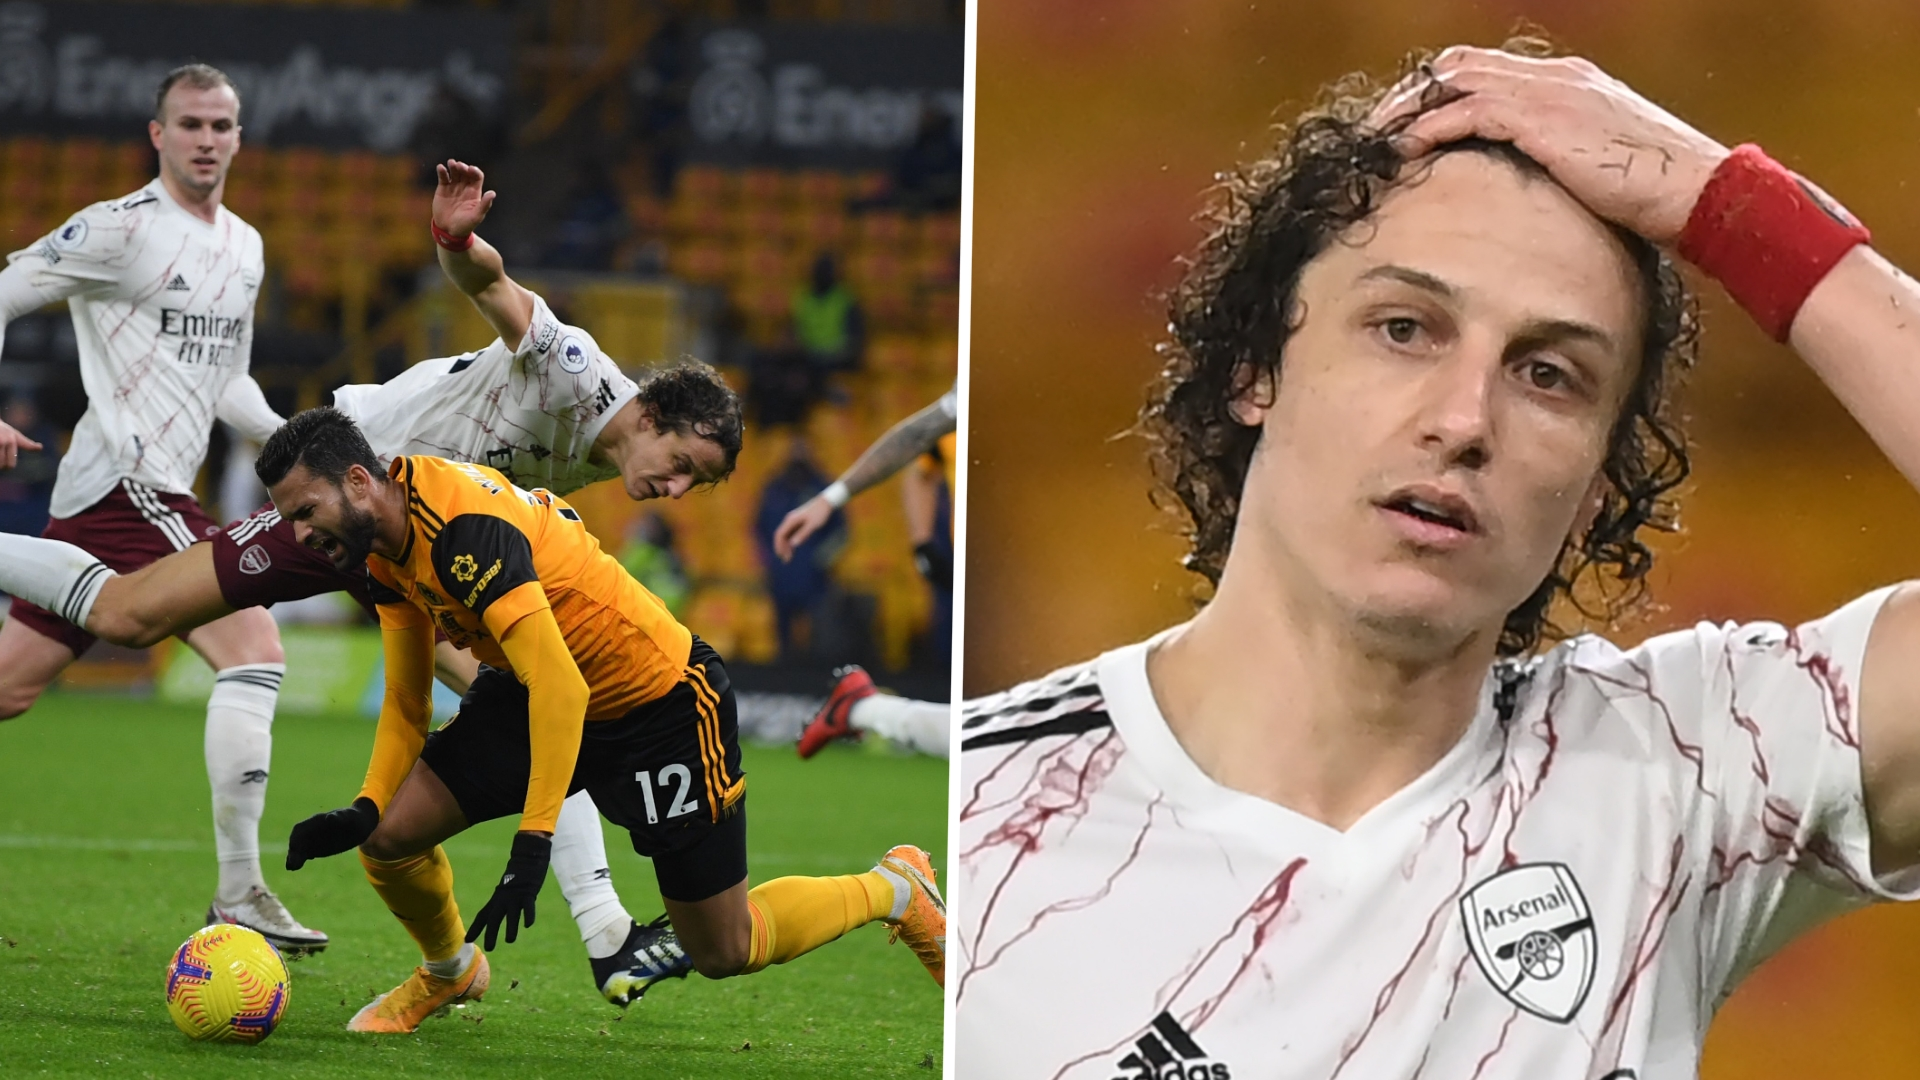 'Losing interest in football!' - Furious Arsenal fans call out FA as Luiz red card stands but Bednarek sending-off is overturned